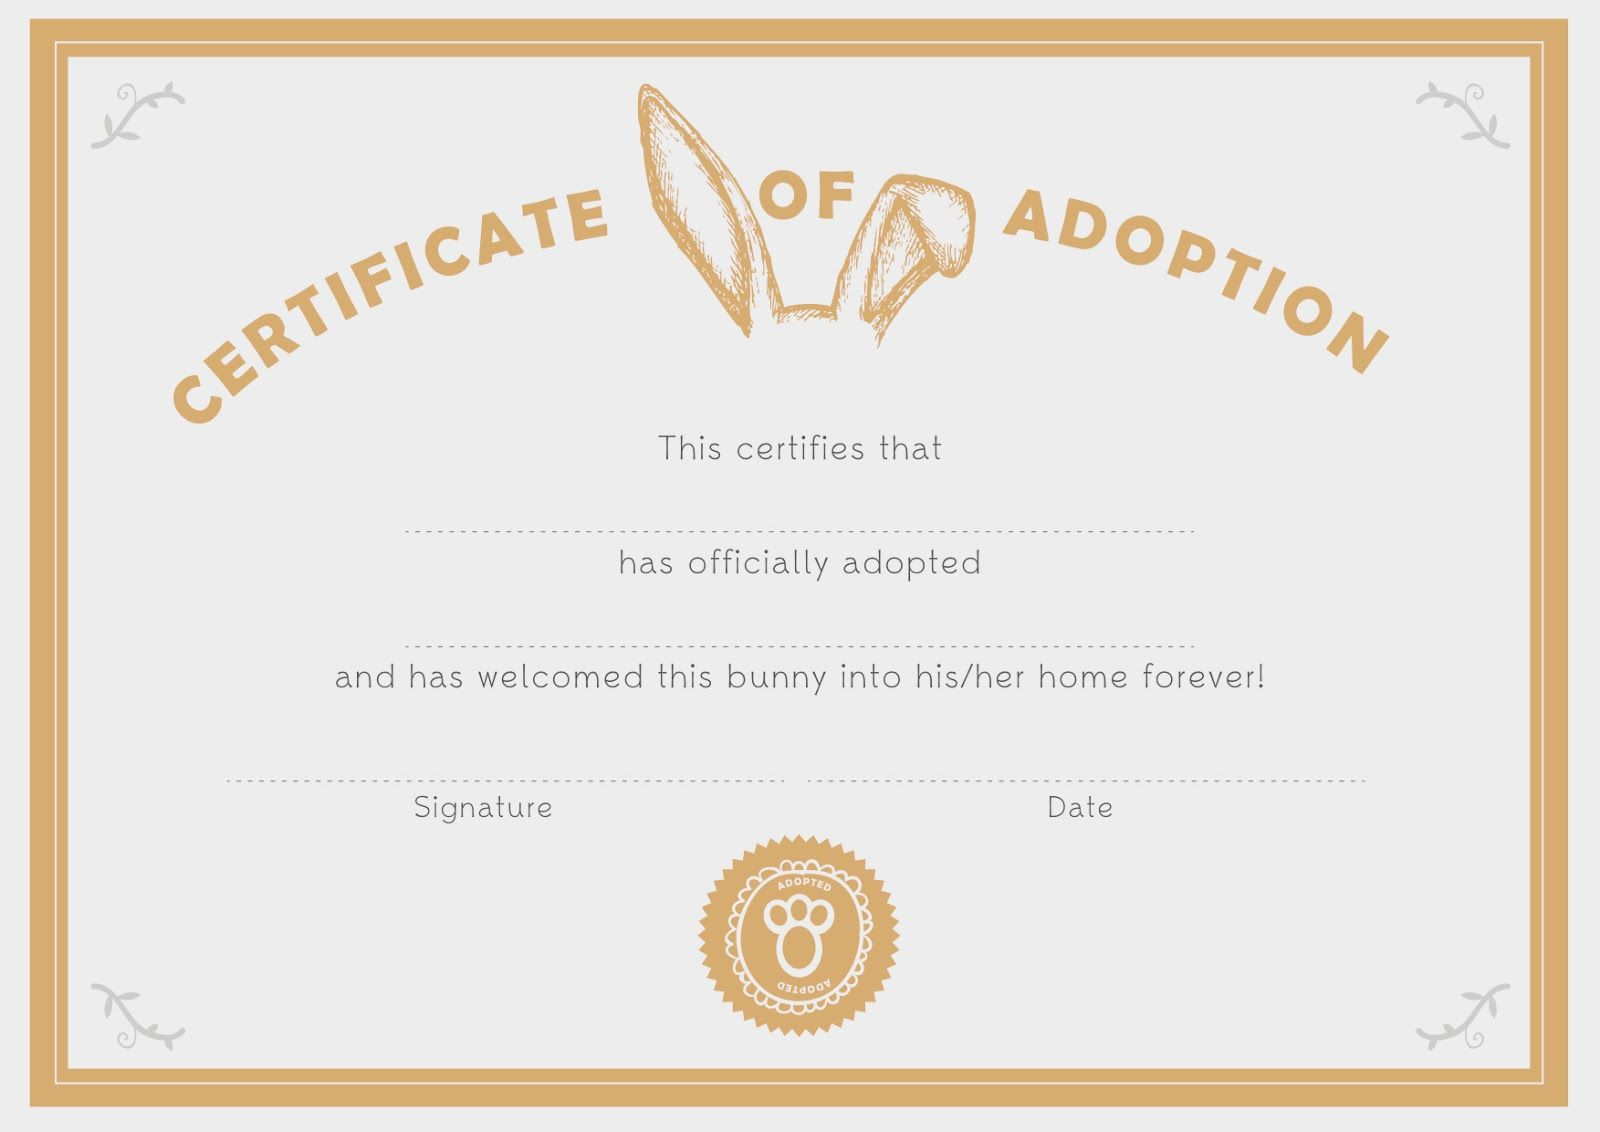 You Are In Good Company Good On Paper Bunny Adoption Certificate Adoption Certificate Pet Adoption Certificate Paper Bunny Adopt a pet certificate template